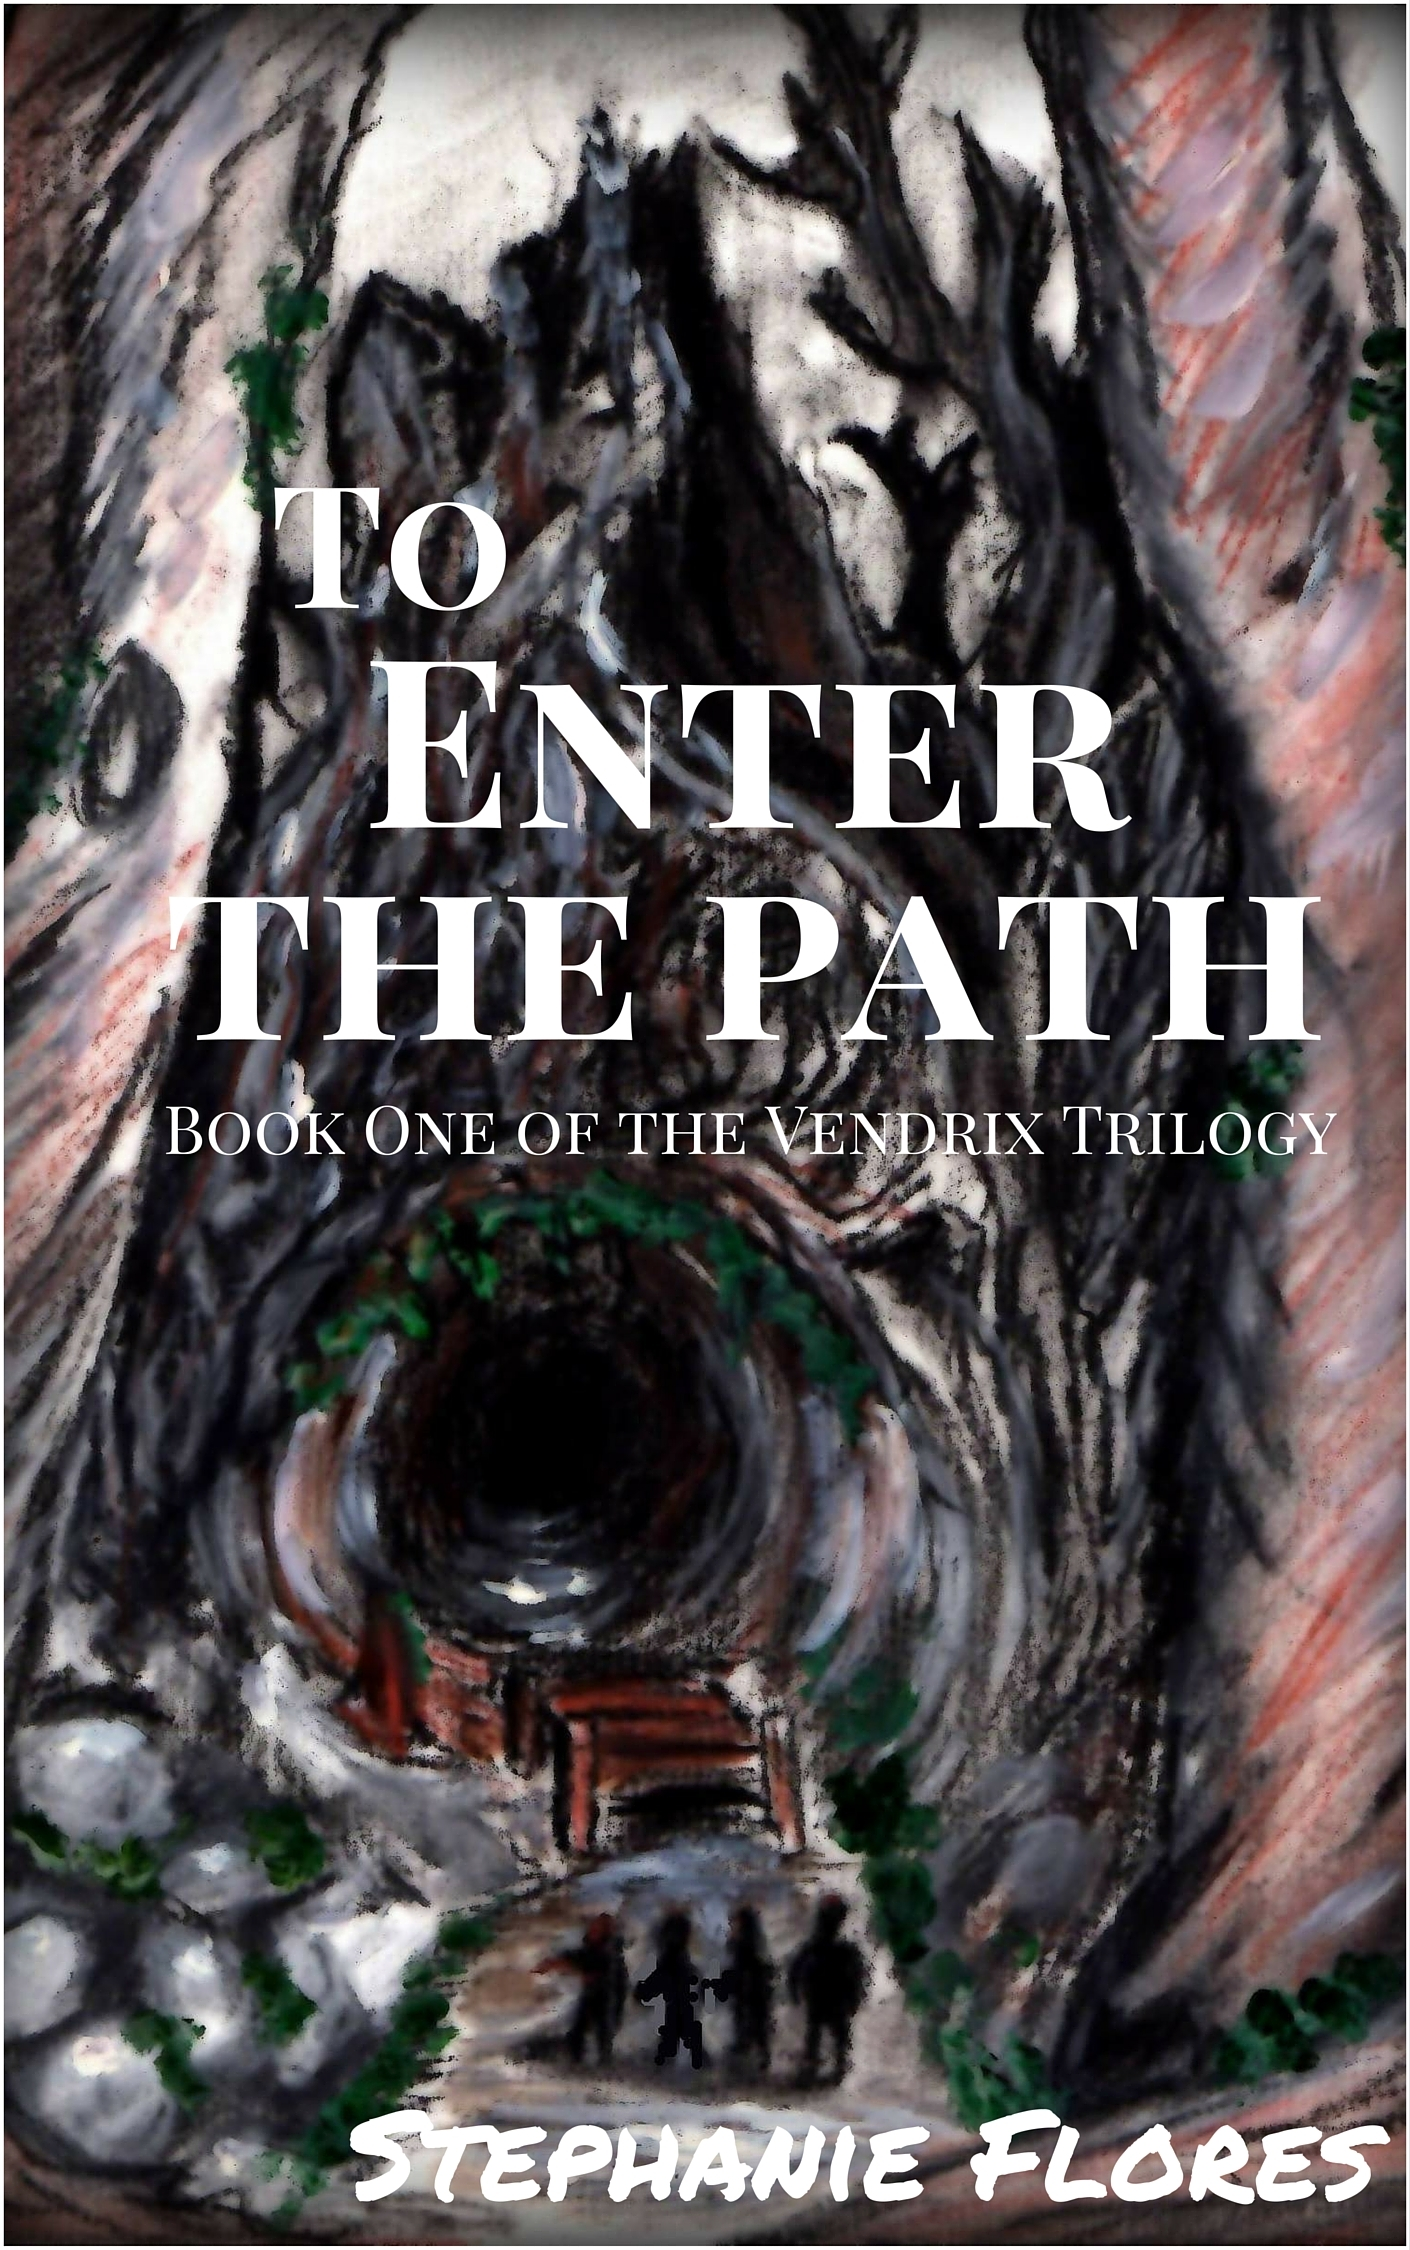 To Enter the Path Stephanie Flores